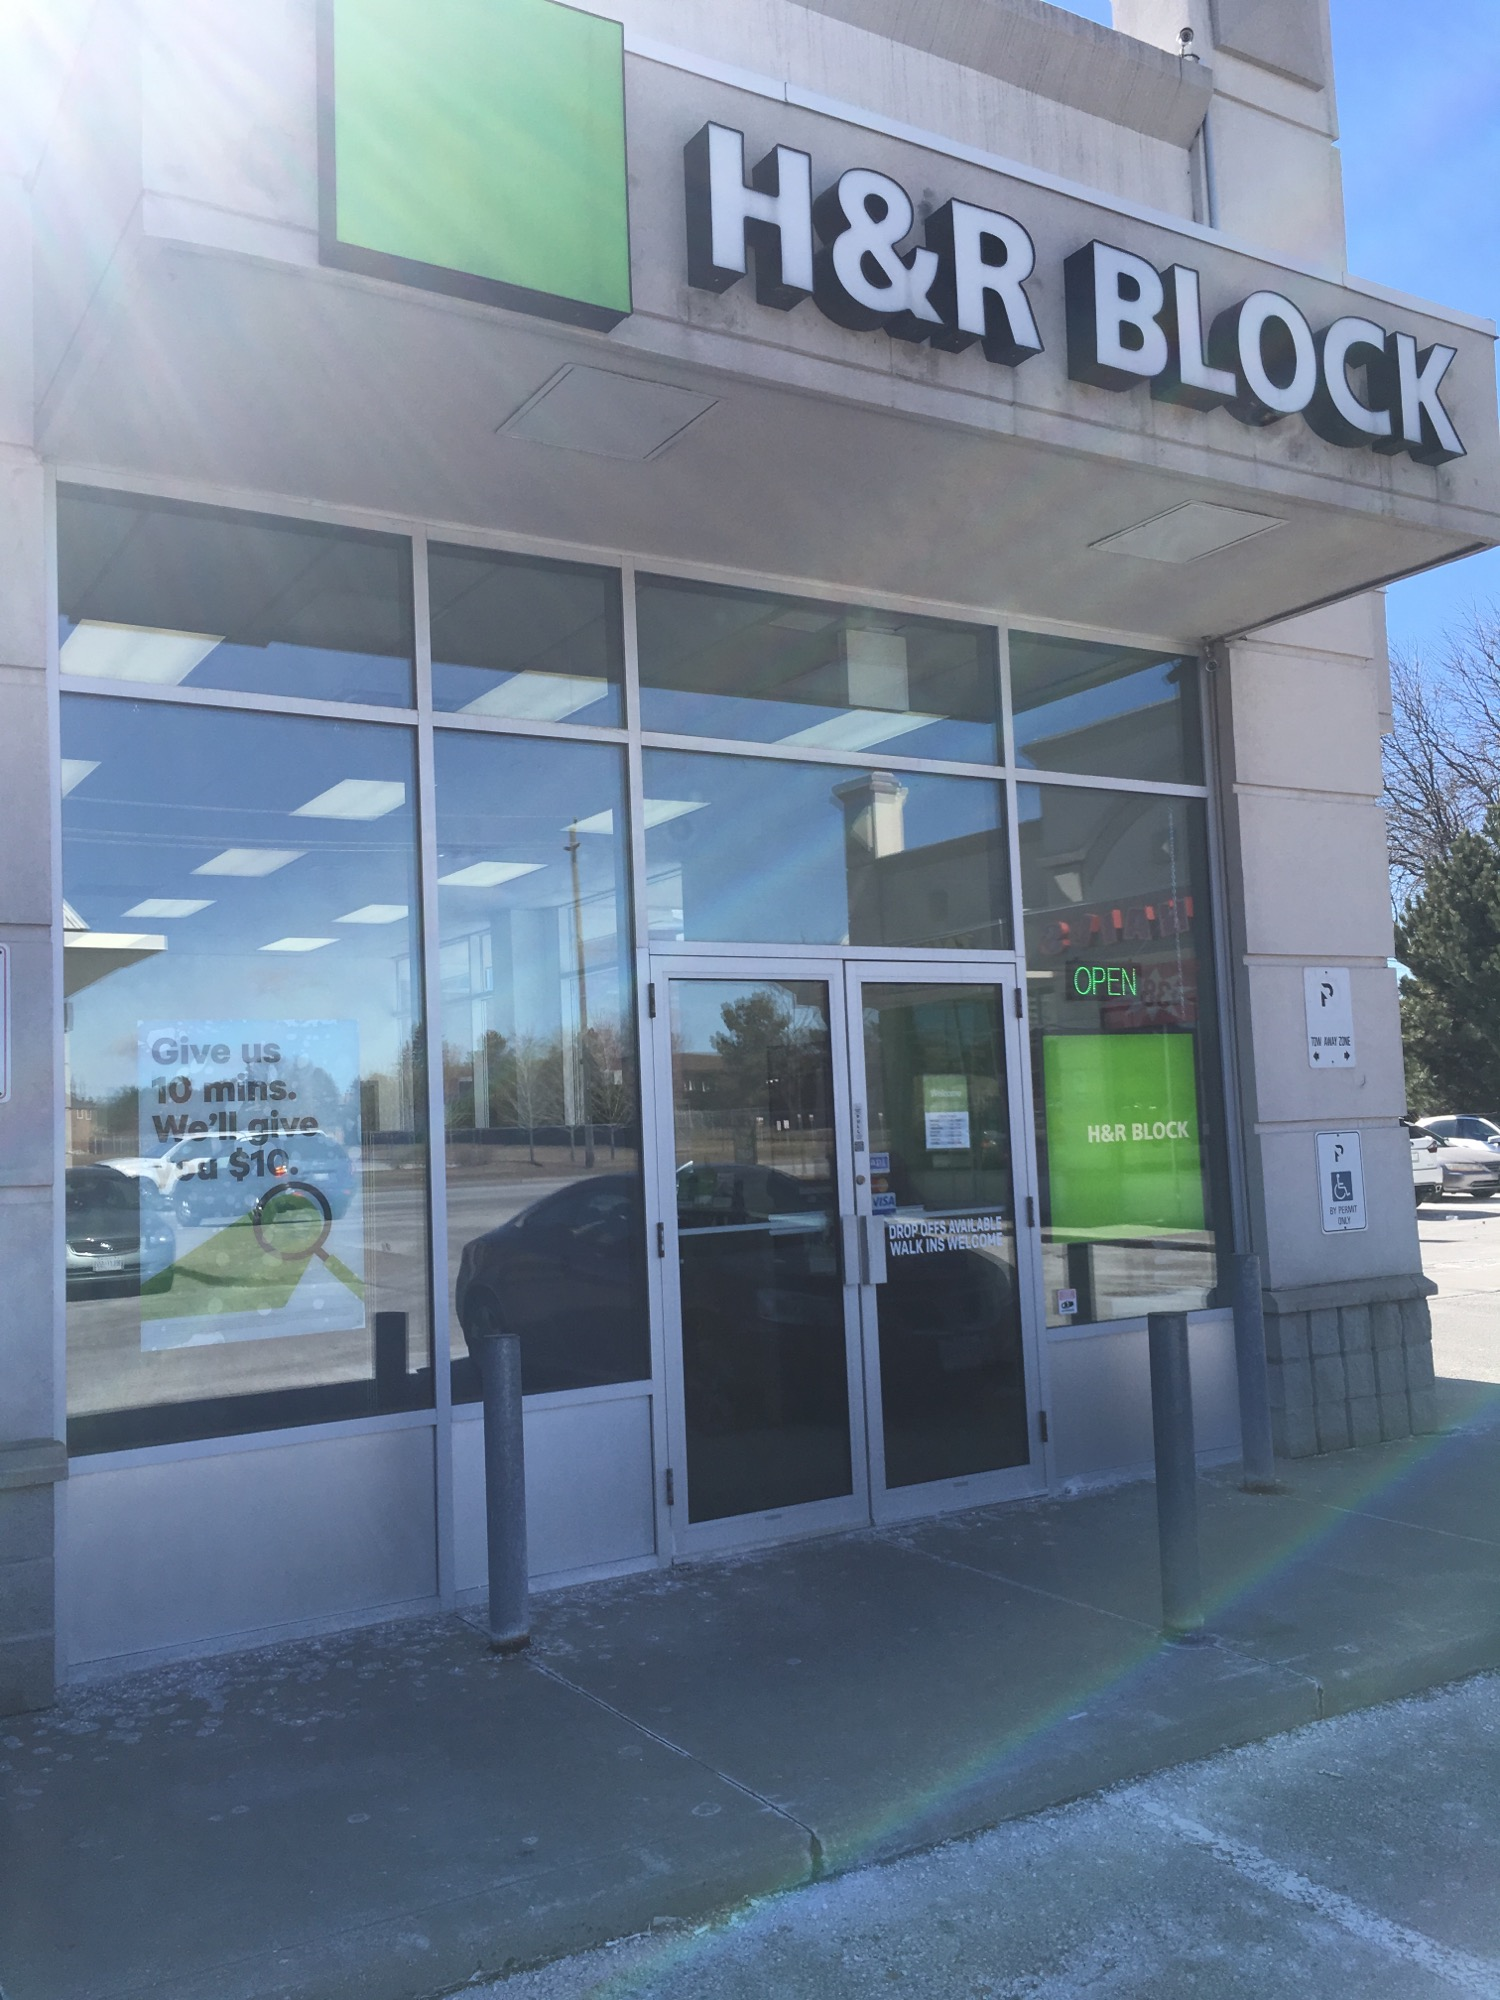 H&R Block Scarborough (416)291-2037